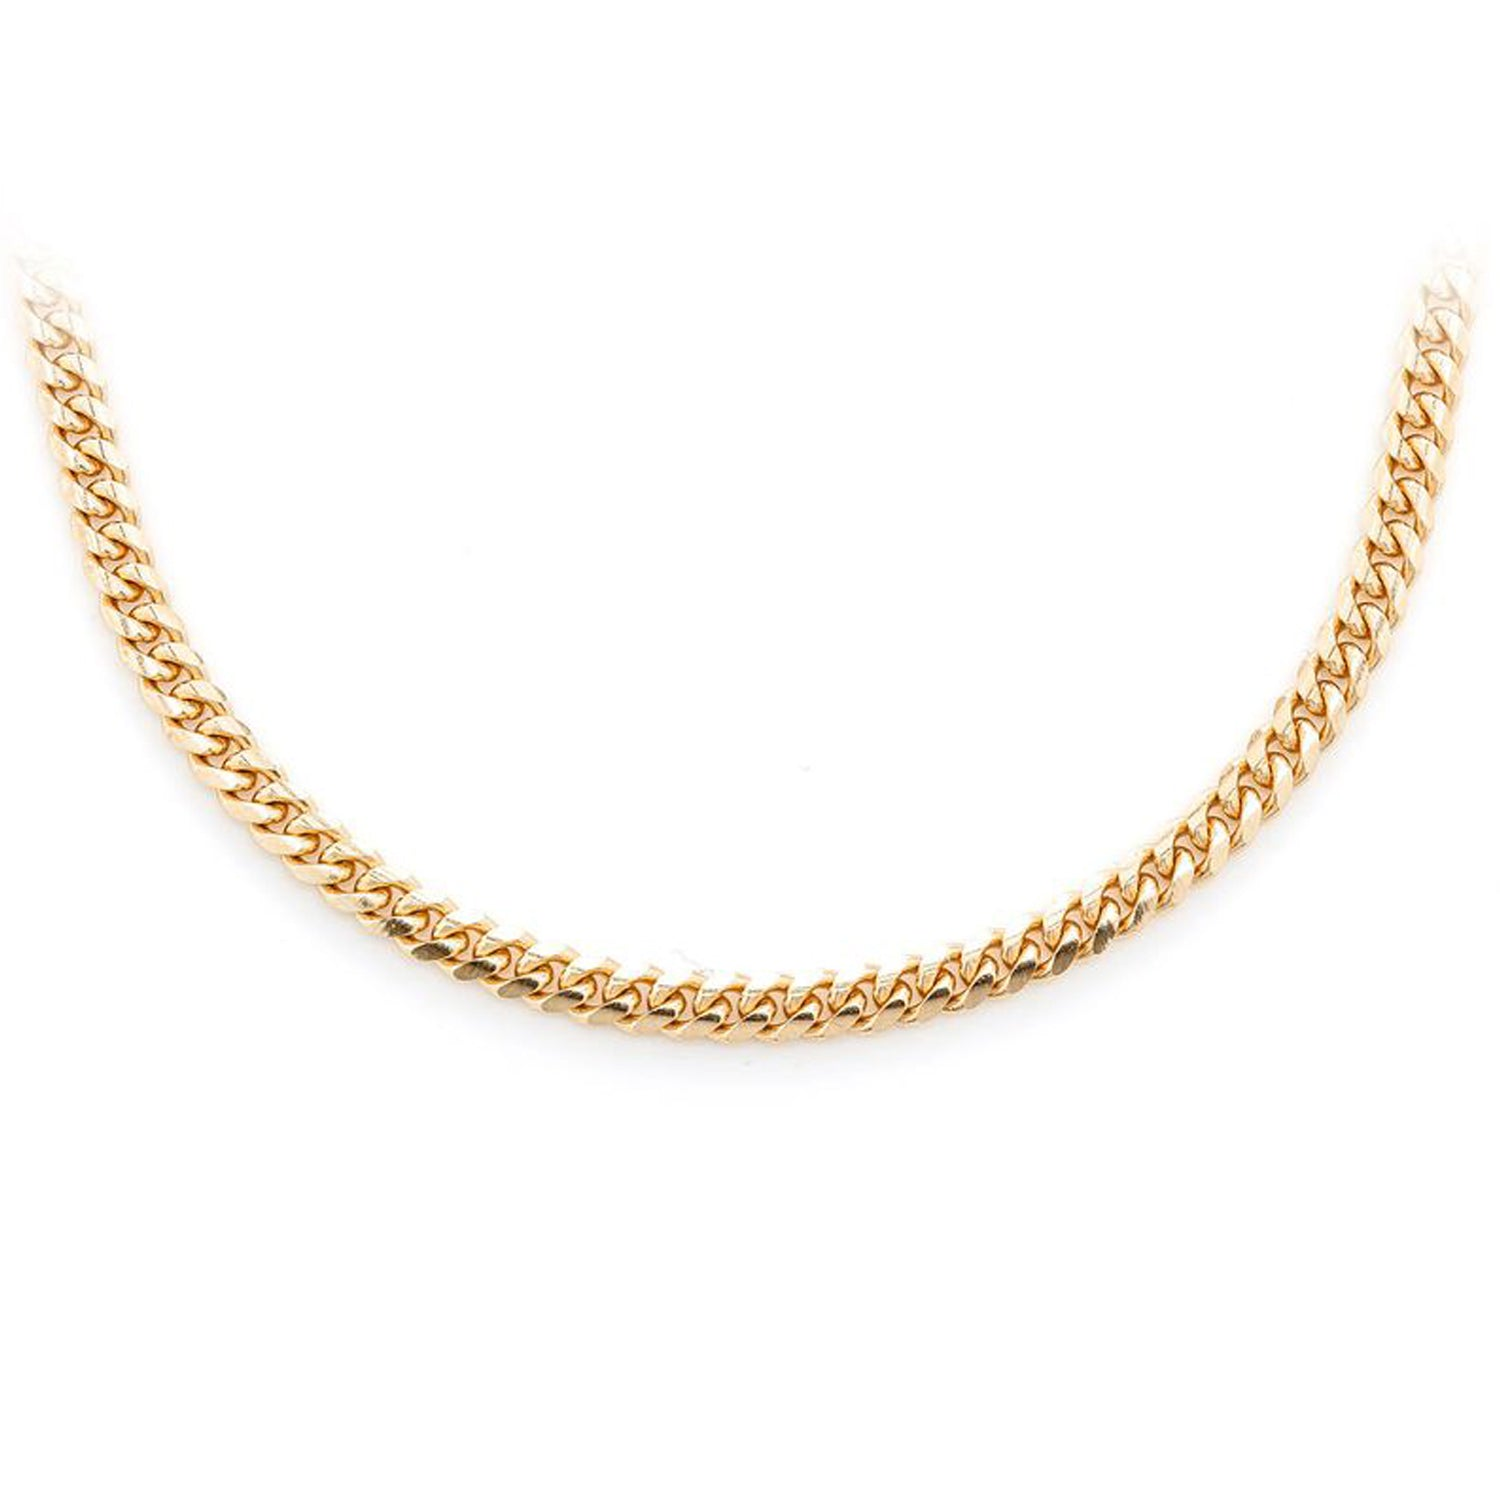 3.5mm Miami Cuban Chain